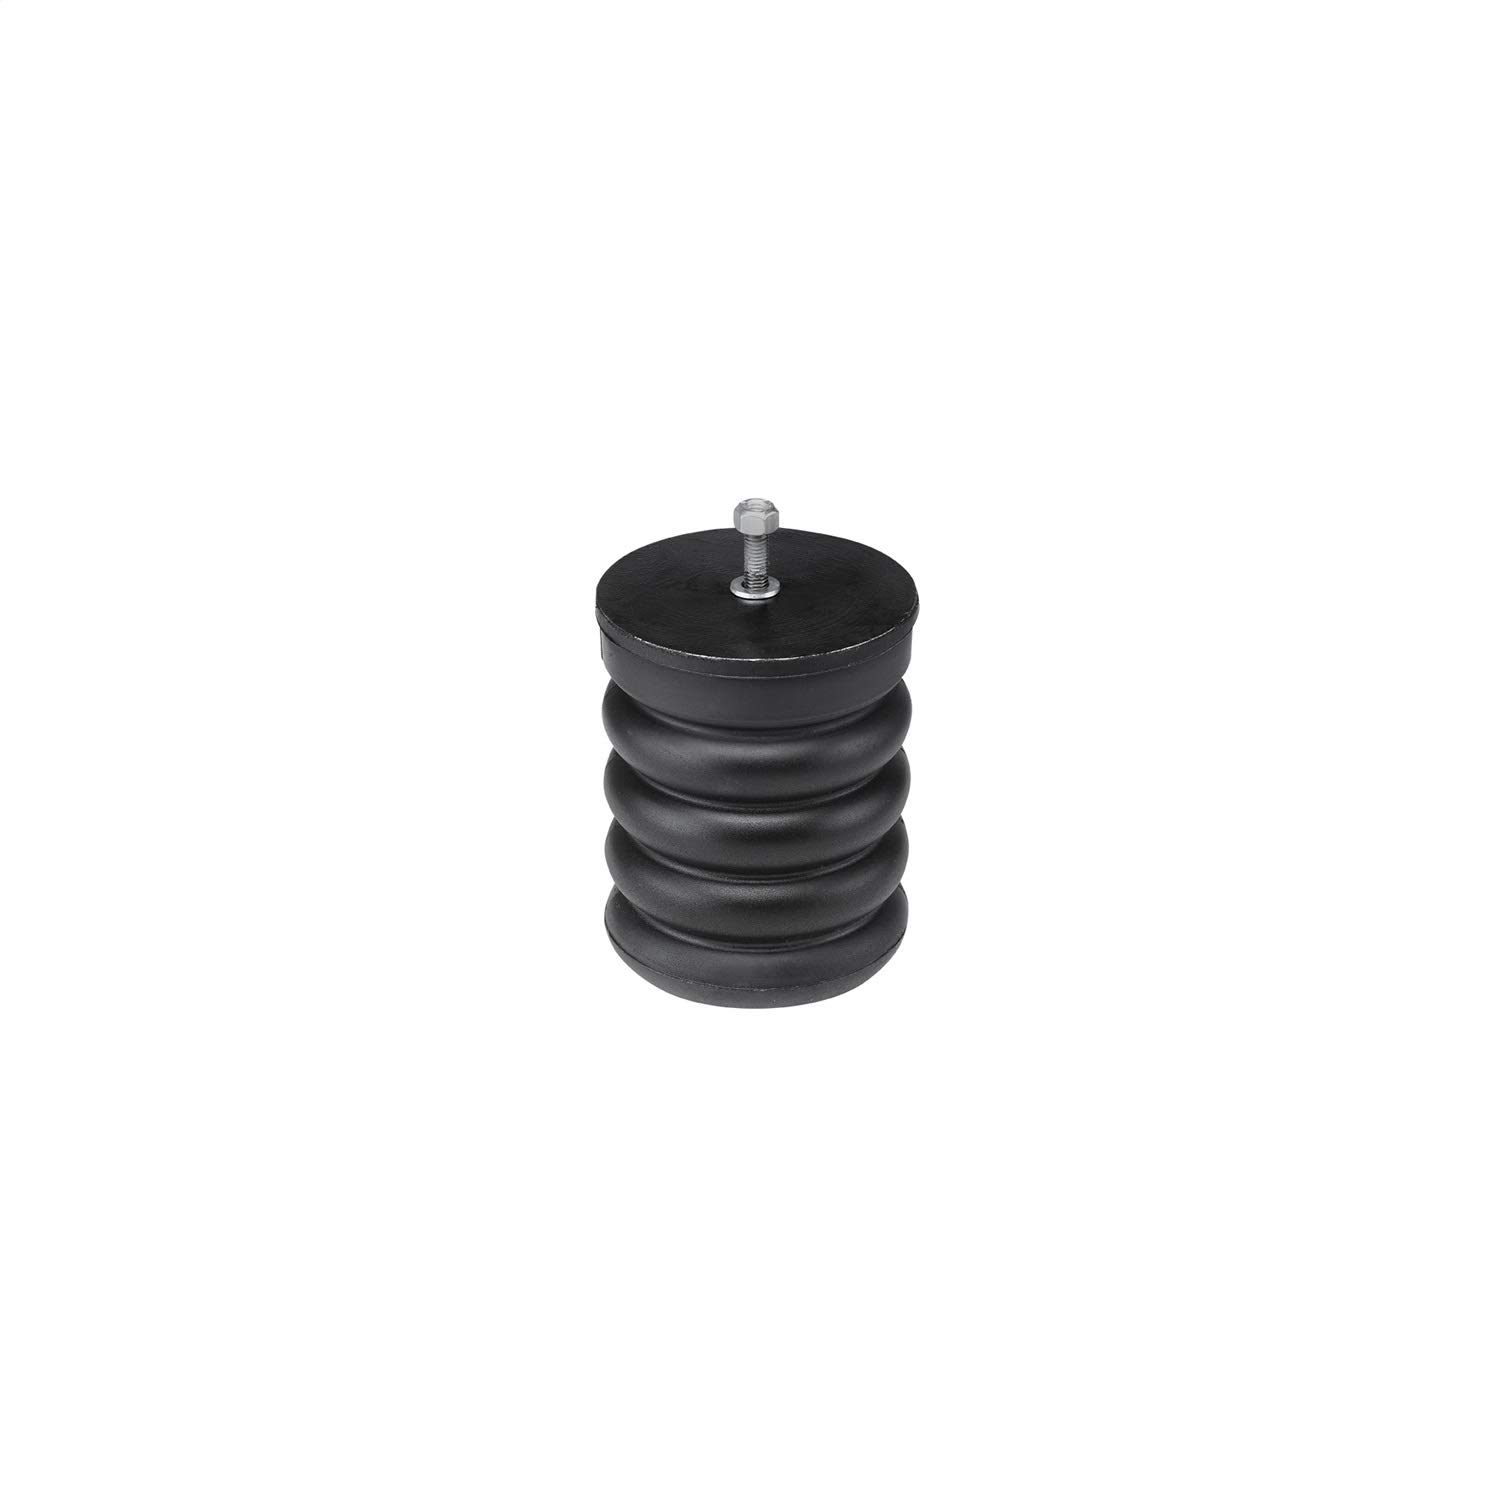 SSF-280-47 | SumoSprings Front for Workhorse W20|W22|W24 by SuperSprings International, Inc.